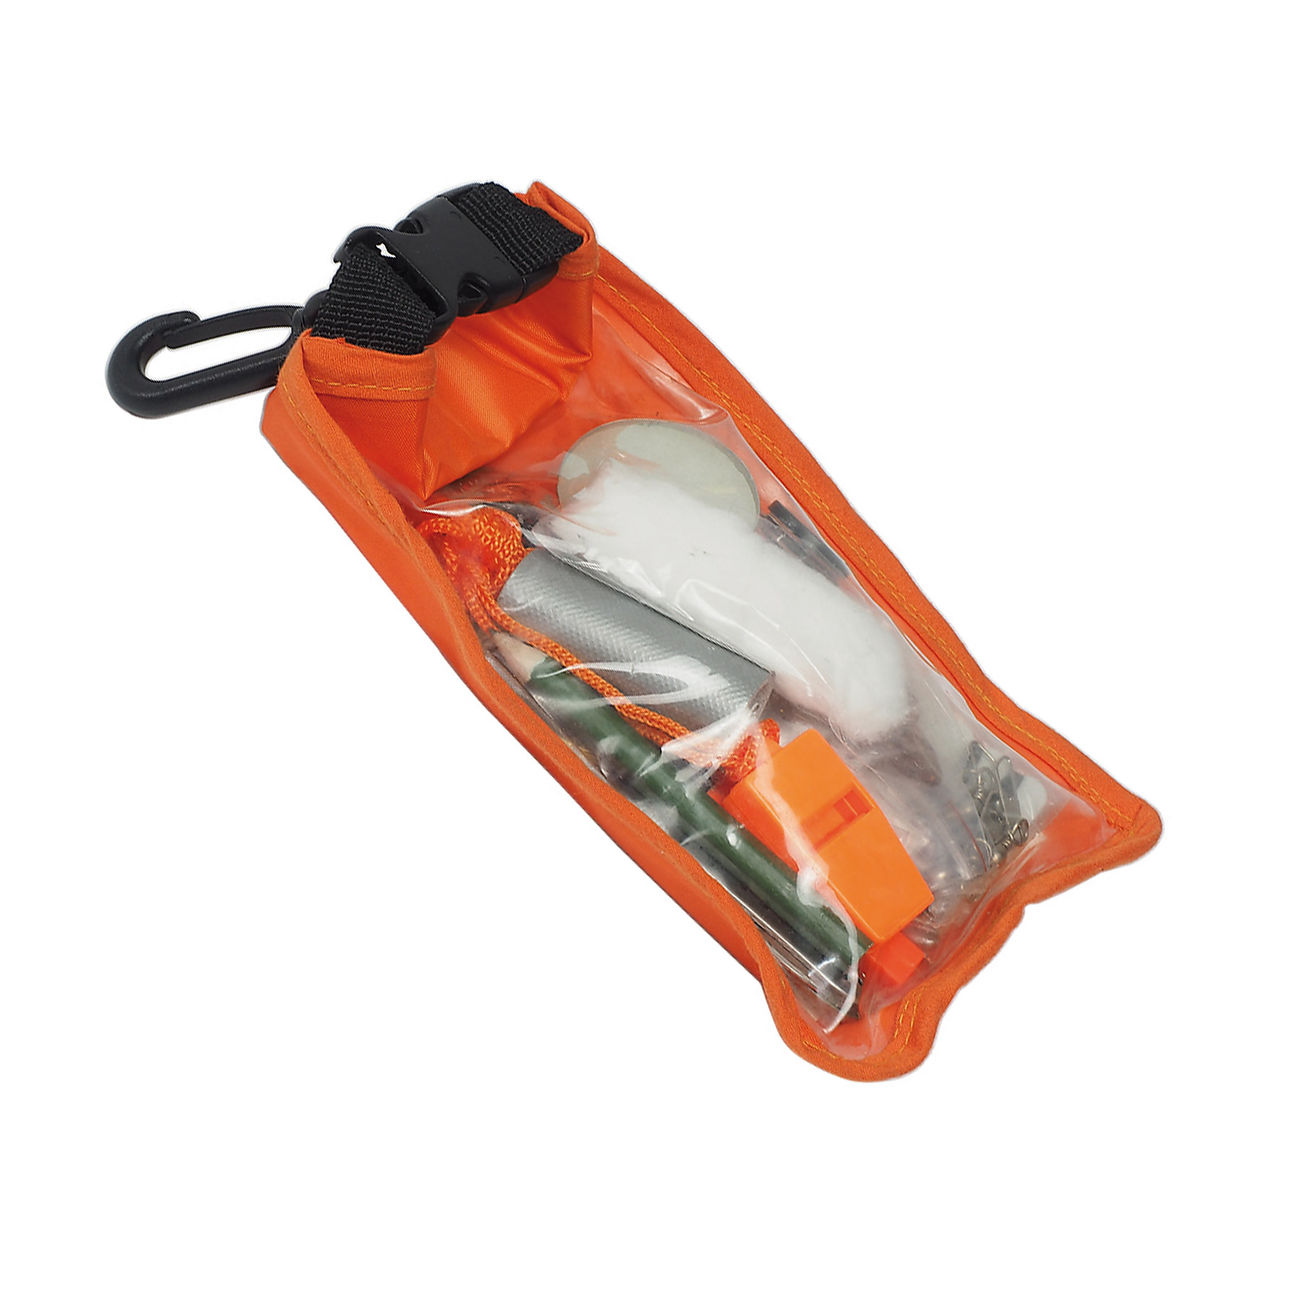 Mil-Tec Outdoor-Survival-Pack small orange 0